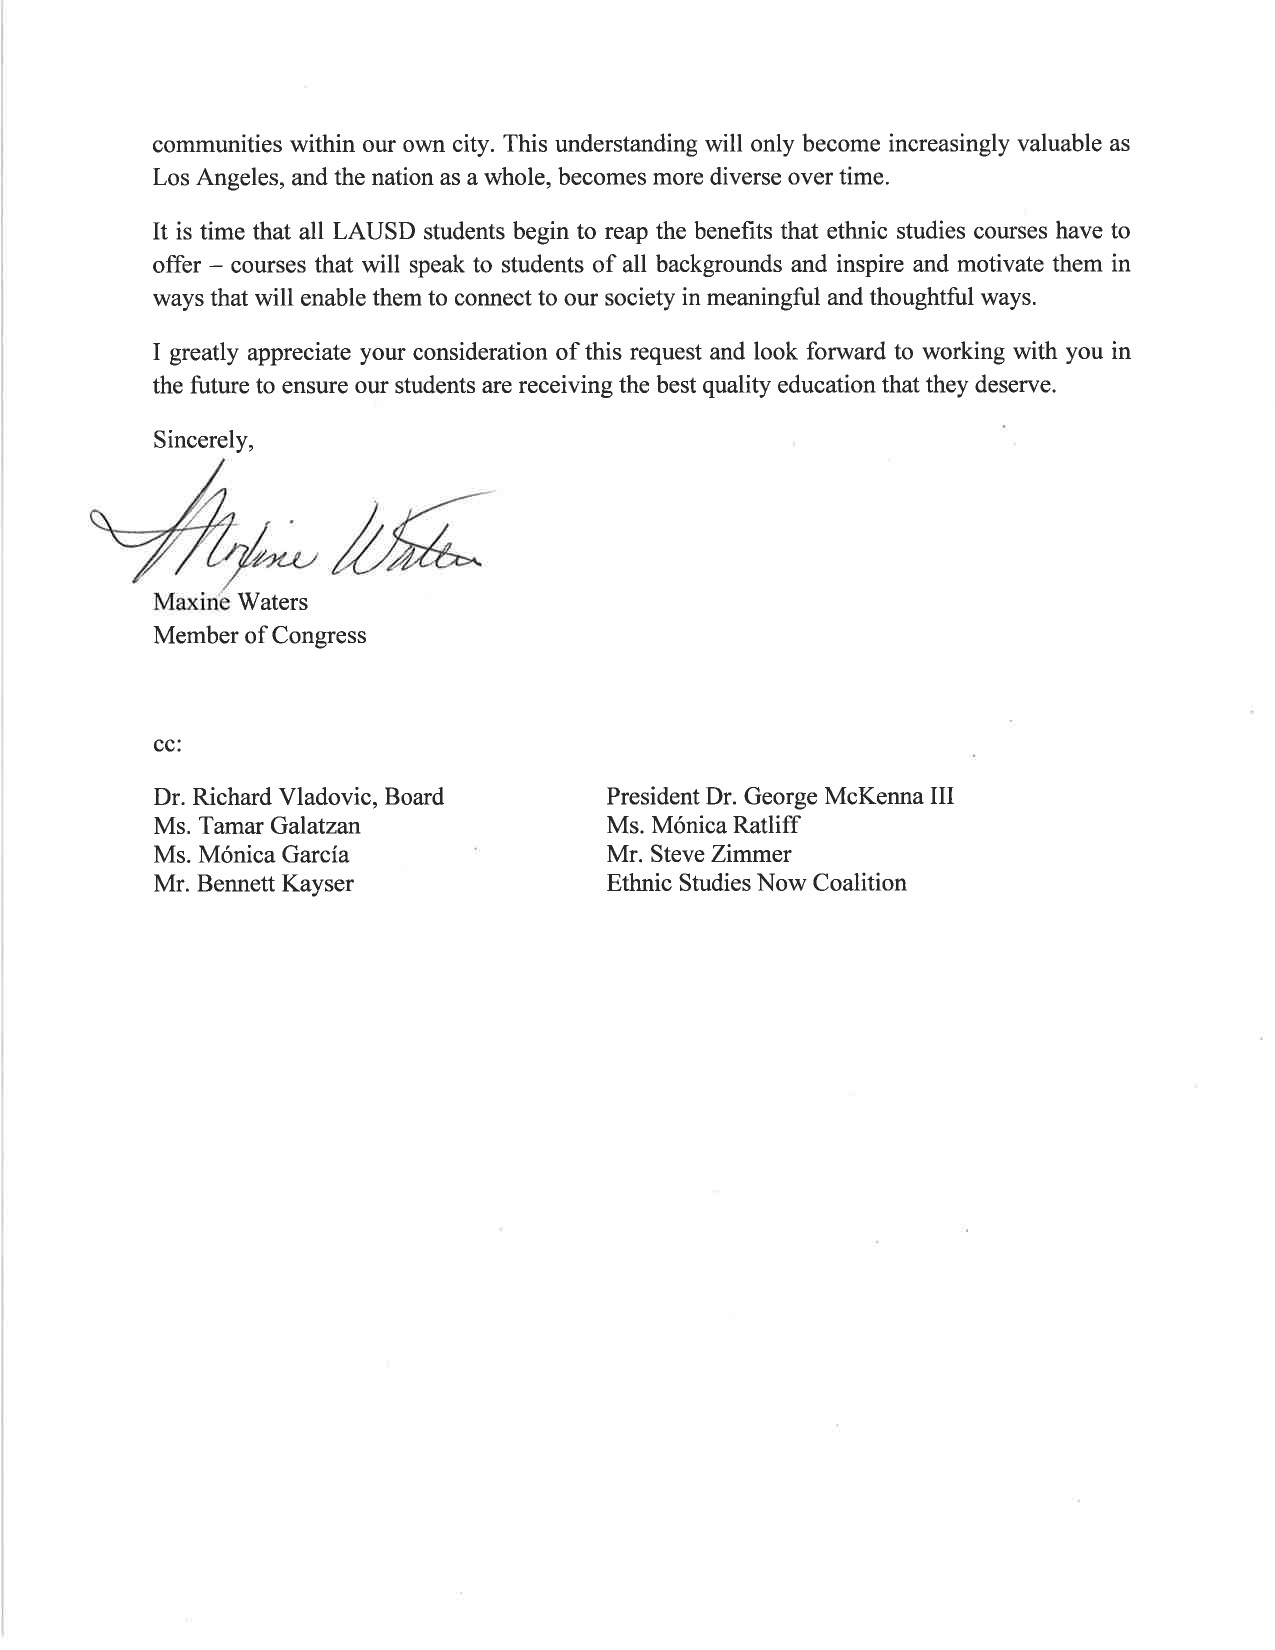 11-17-2014_Rep_Maxine_Watters_Letter_to_LAUSD__re_Ethnic_Studies_Requirement_p2.jpg